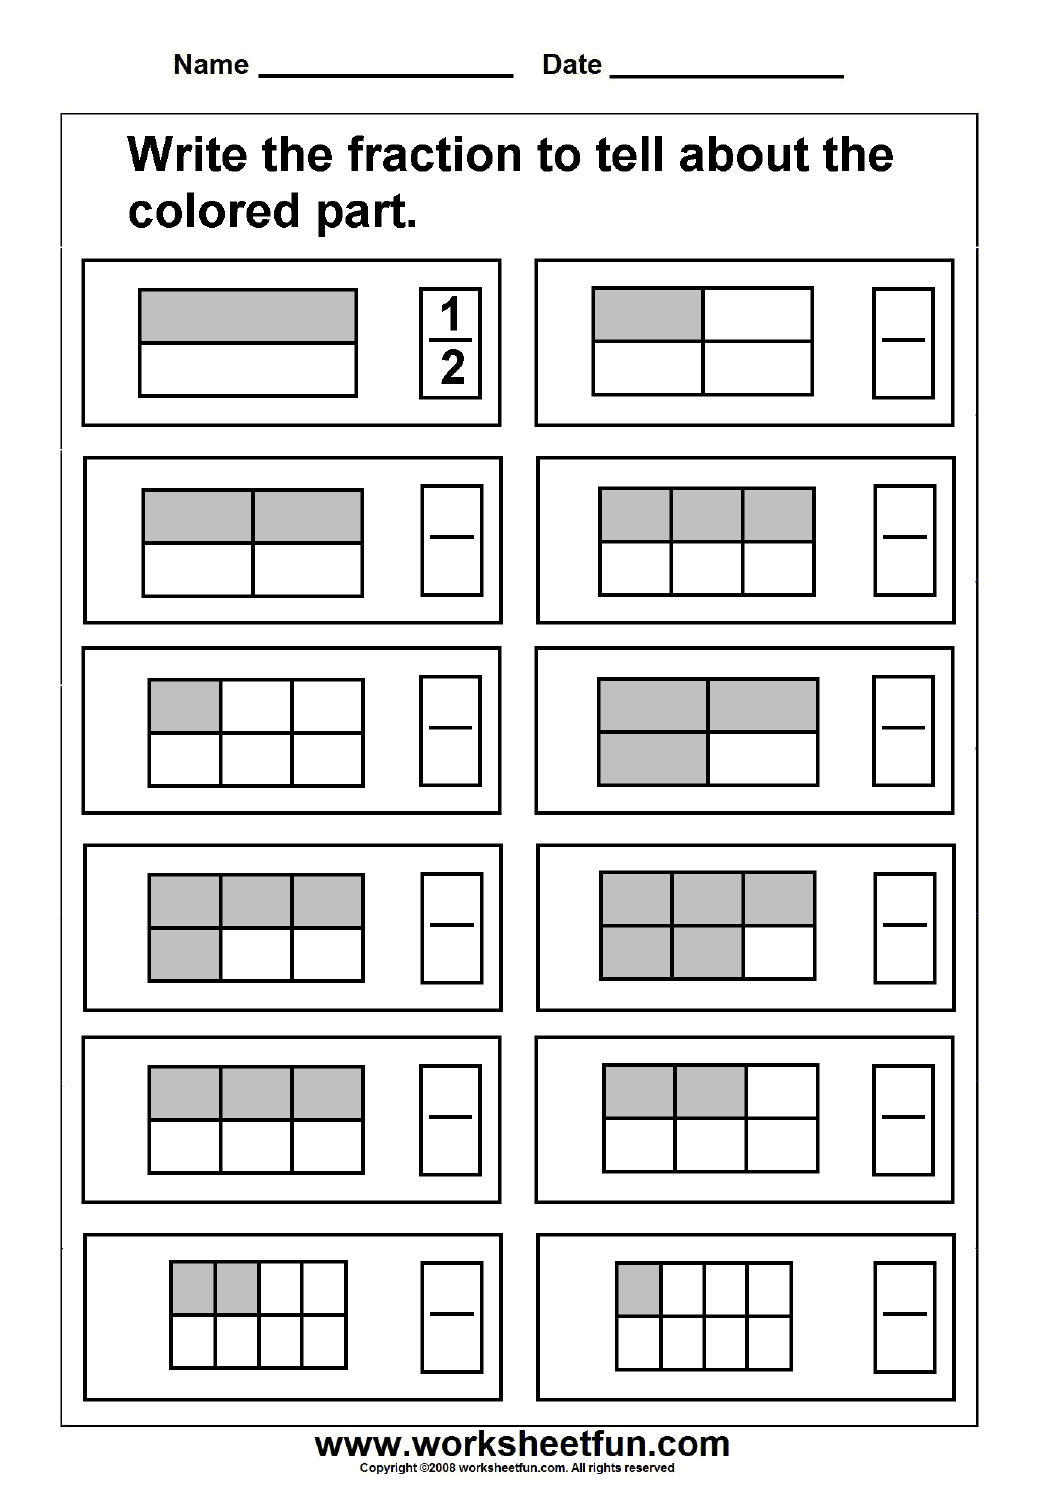 Fraction FREE Printable Worksheets Worksheetfun – Fractions Worksheets for Kindergarten